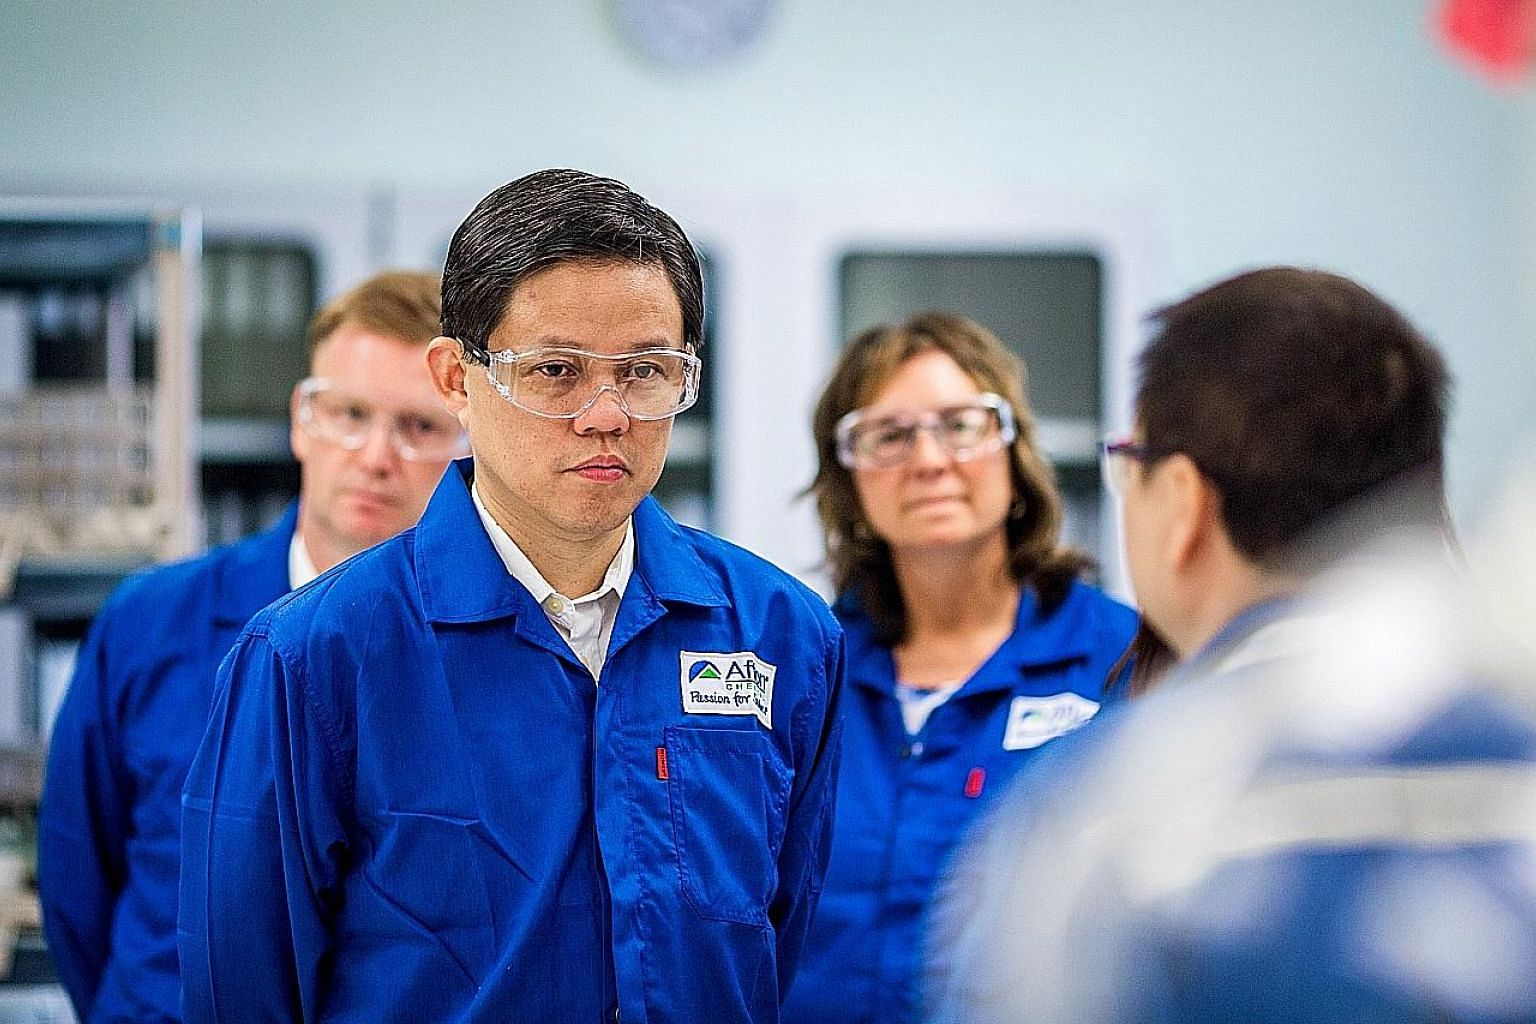 Minister for Trade and Industry Chan Chun Sing visiting the expanded facilities of US additives firm Afton Chemical yesterday. The $222 million expansion brings the company's total investment here to $380 million.